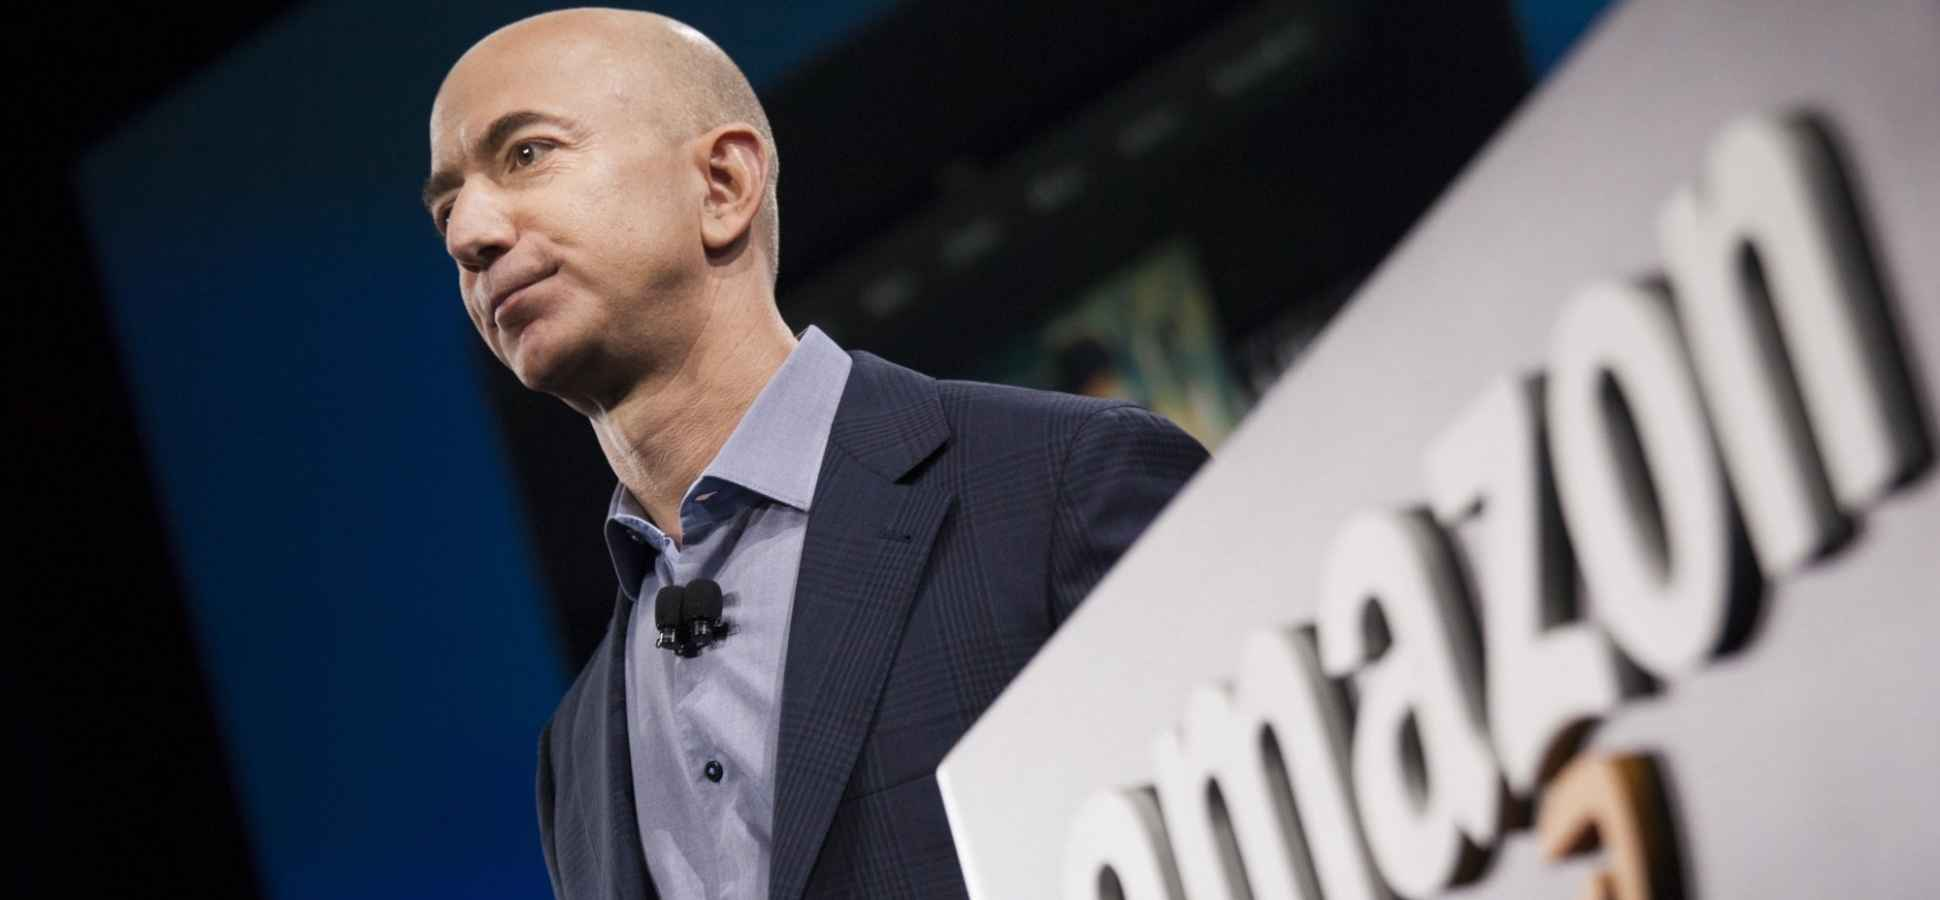 The 1 Principle Jeff Bezos and Amazon Follow to Fuel Incredible Growth